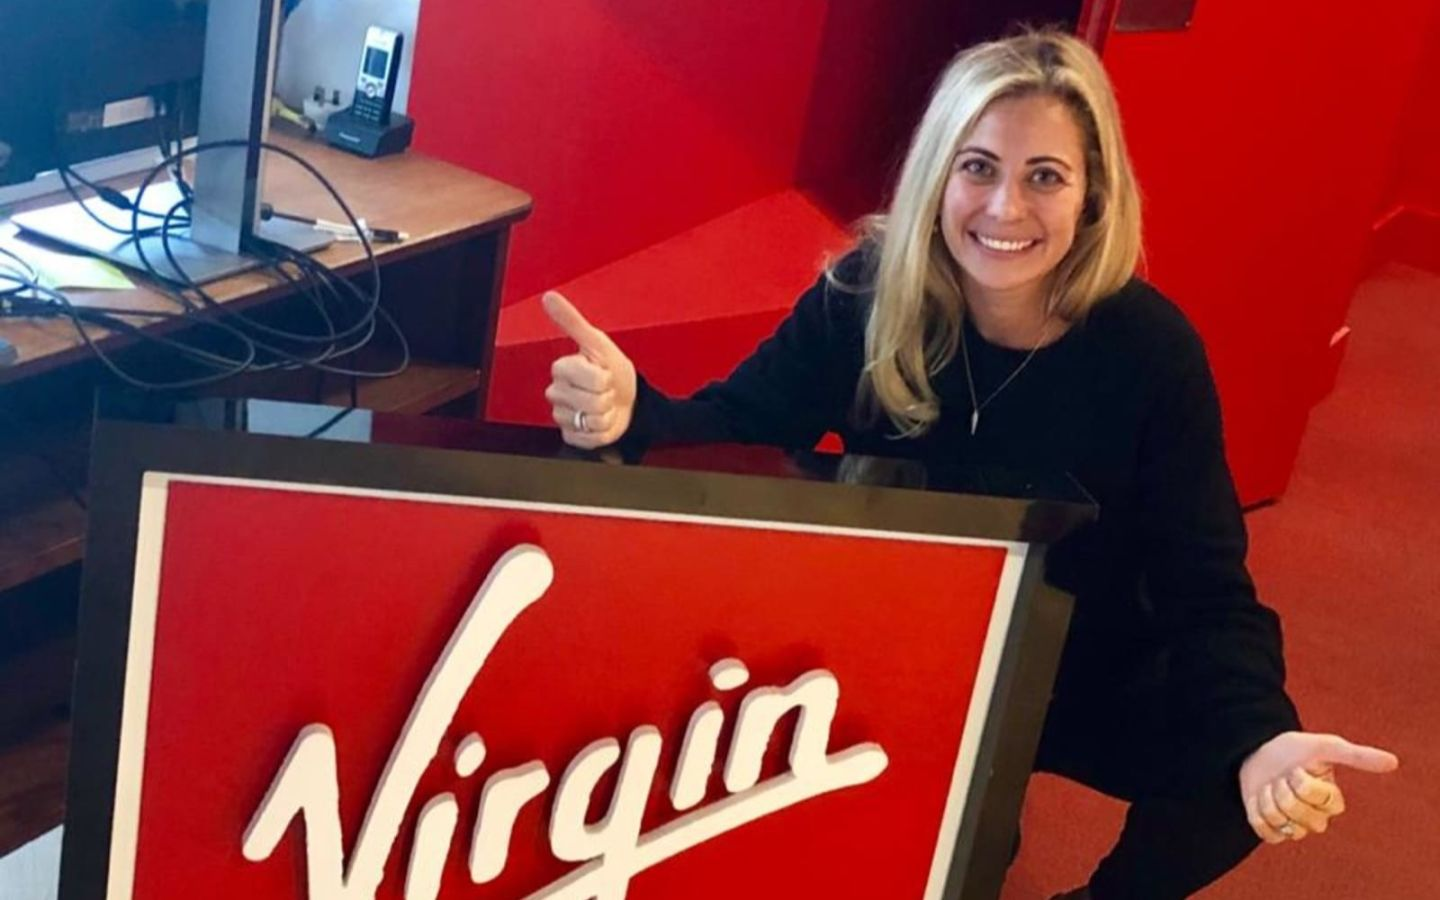 Holly Branson at the Virgin Management office in London - smiling in front of a Virgin logo